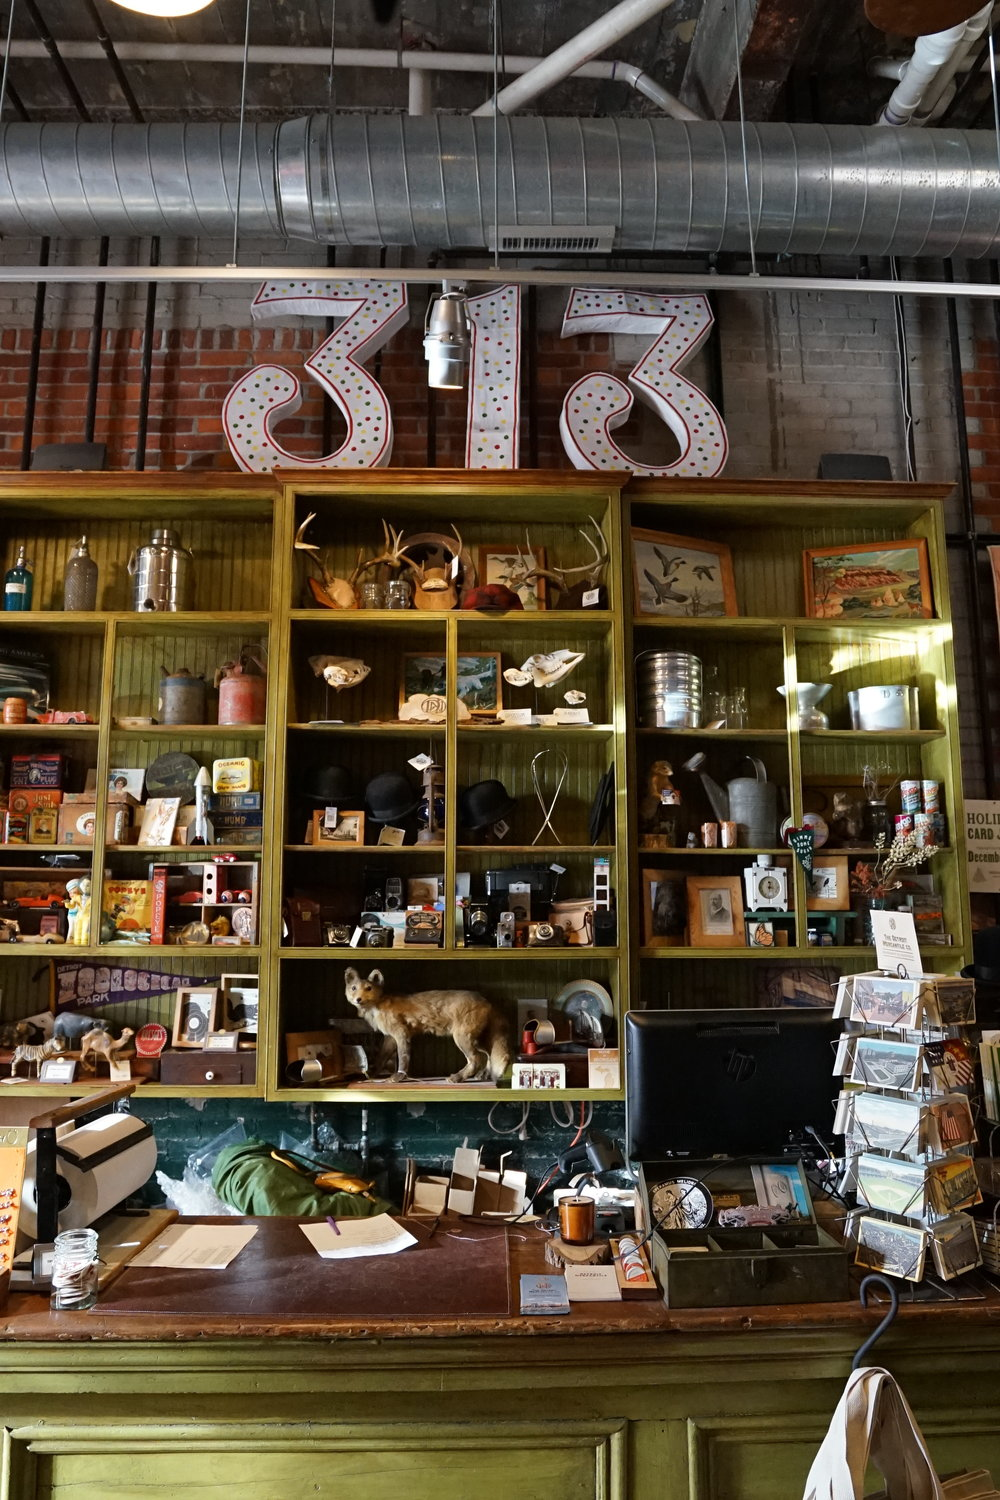 The Detroit Mercantile Co 3434 Russell St, Detroit, MI 48207